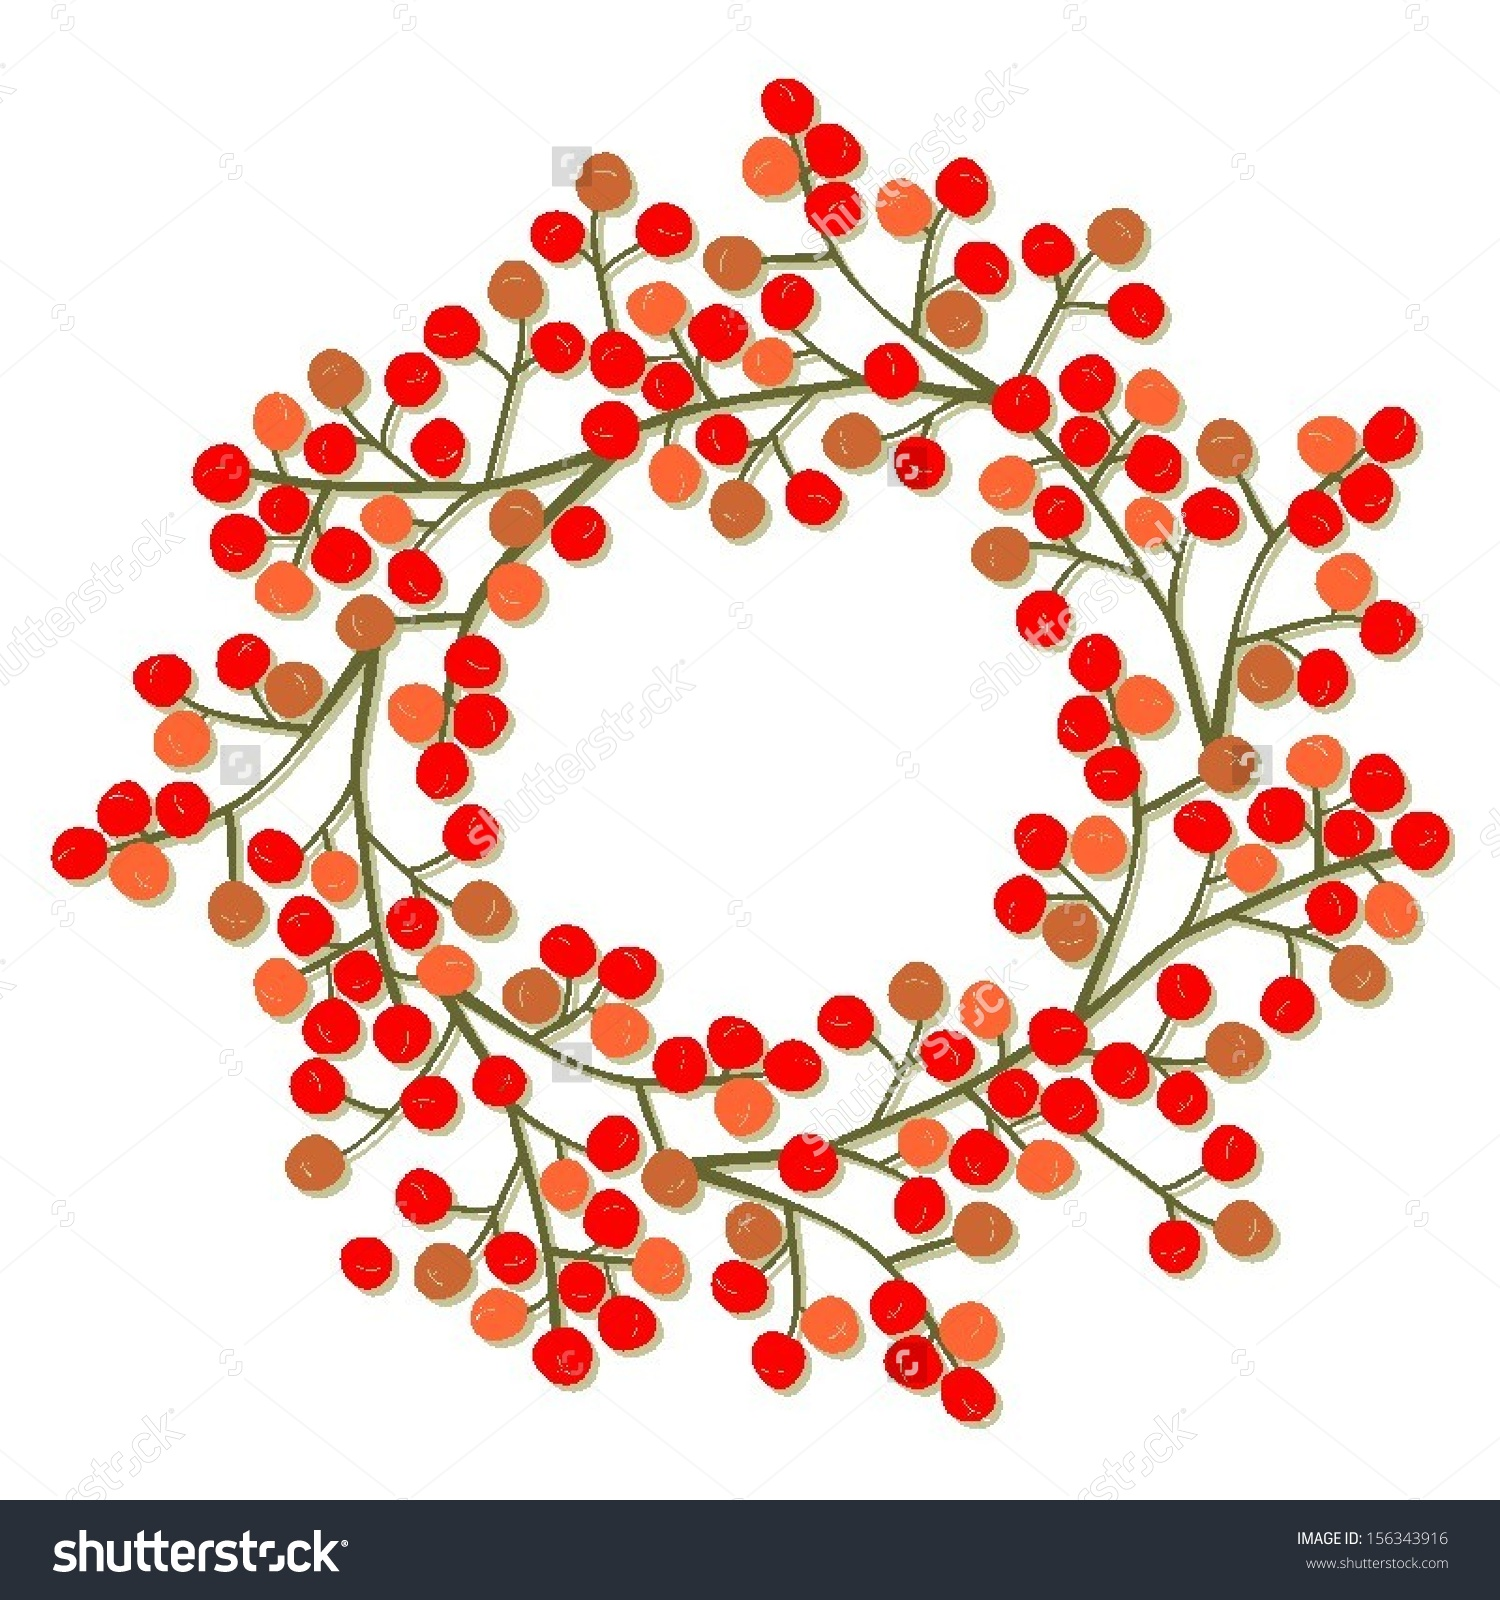 Red Orange Rowan Berry Mountain Ash Stock Vector 156343916.